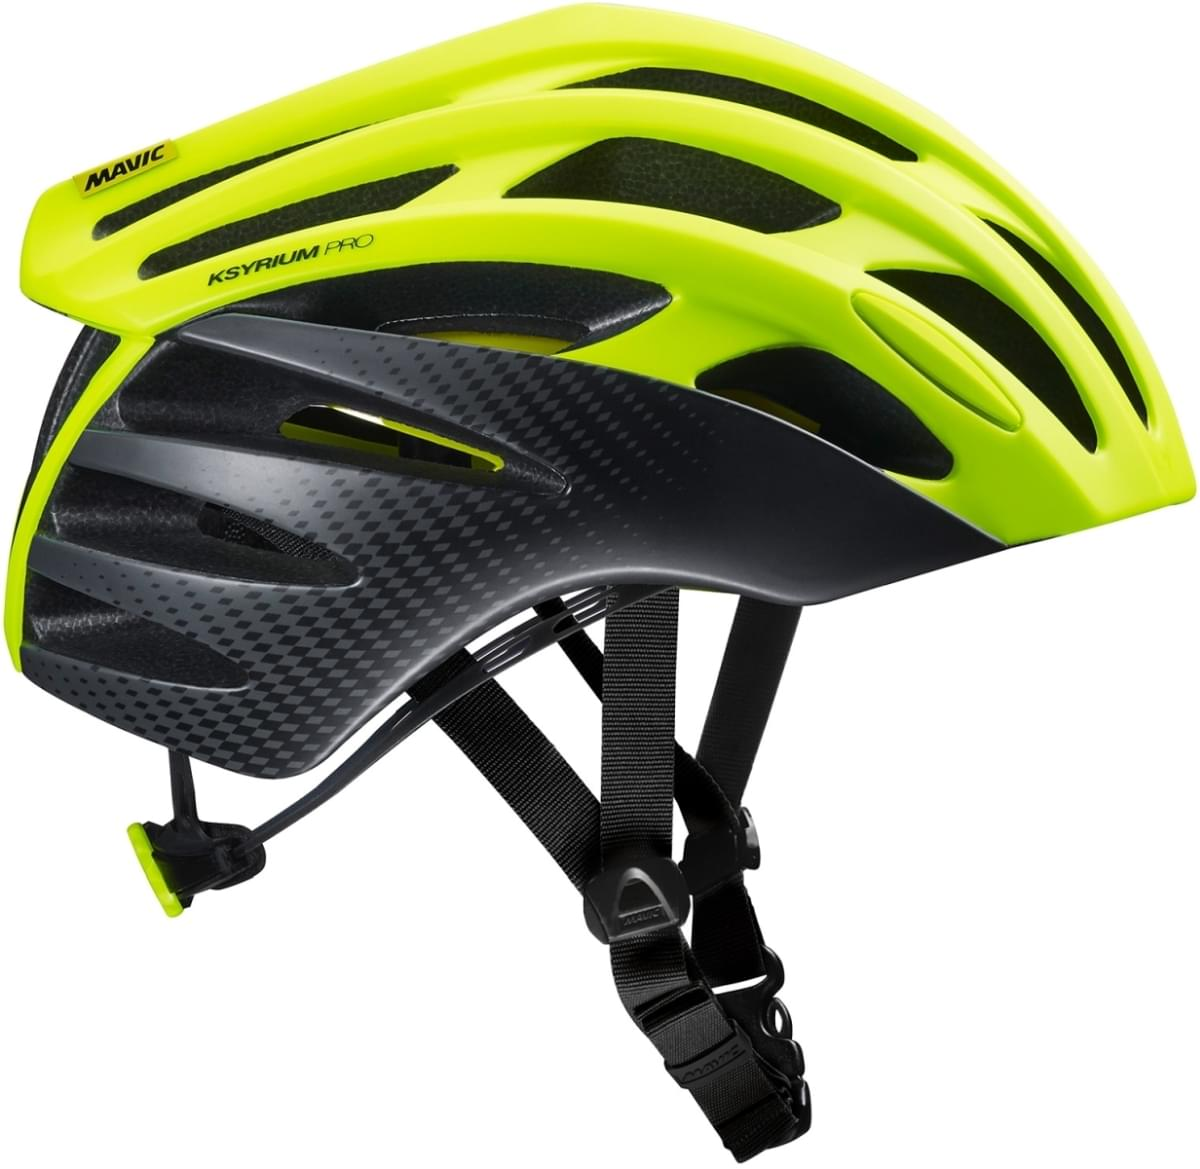 Mavic Ksyrium Pro Mips Helmet - safety yellow/black M